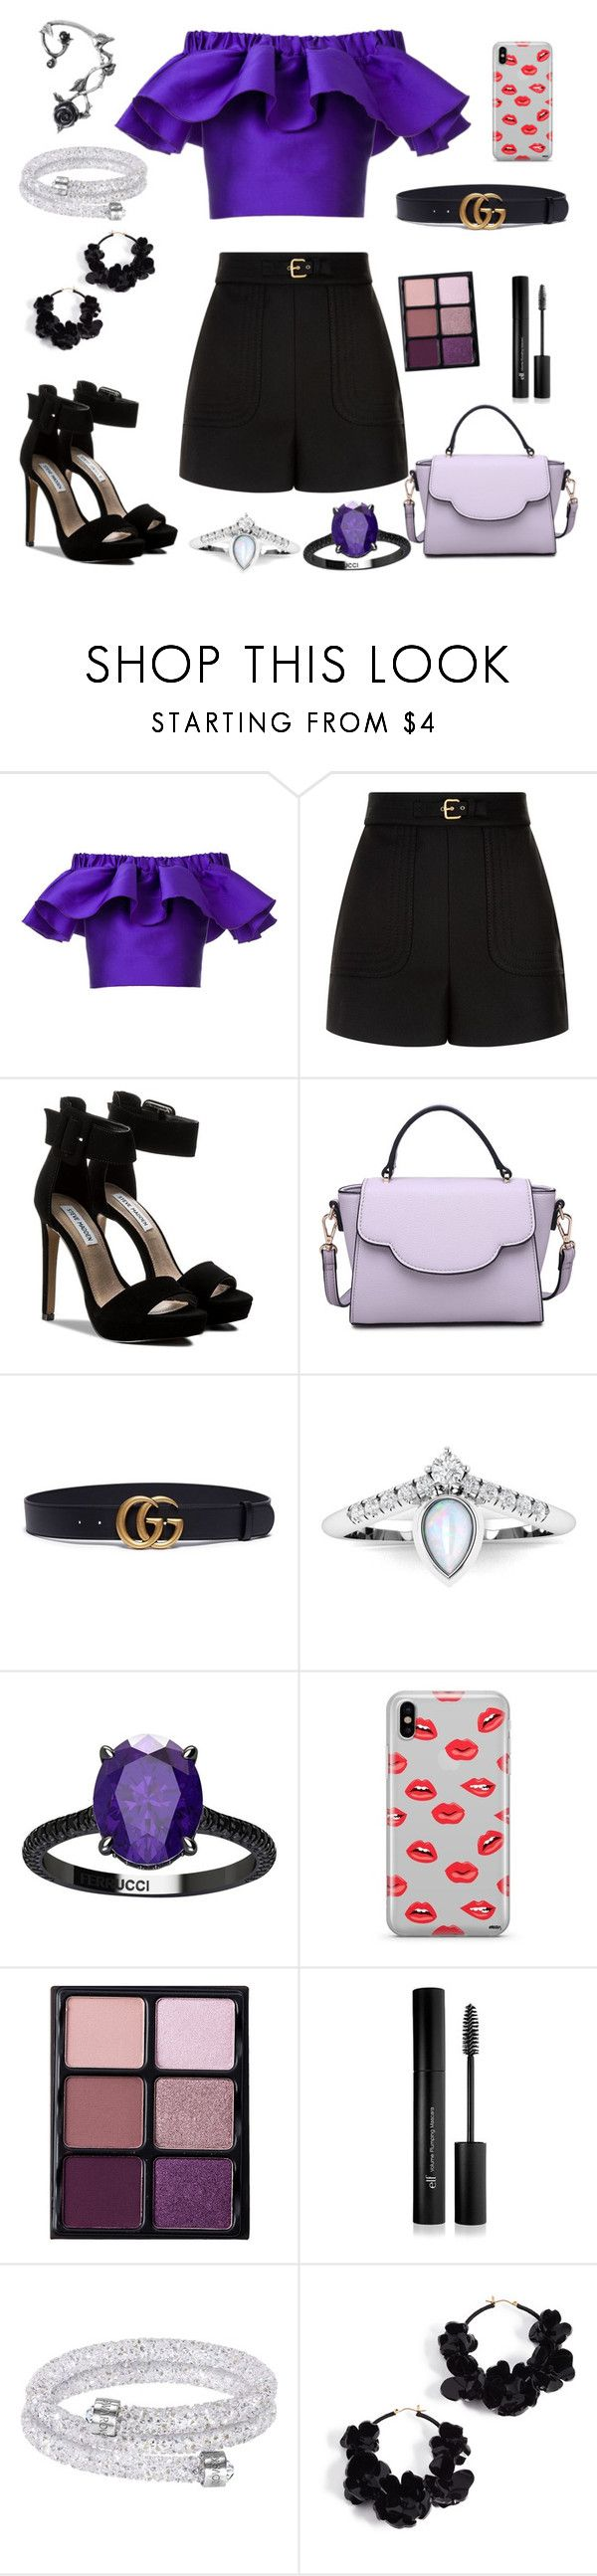 """Summer Day Woman On A Mission"" by carolina-rebocho ❤ liked on Polyvore featuring Maison Rabih Kayrouz, RED Valentino, Steve Madden, Urban Expressions, Gucci, Ferrucci, Samsung, Viseart, Forever 21 and Oscar de la Renta"